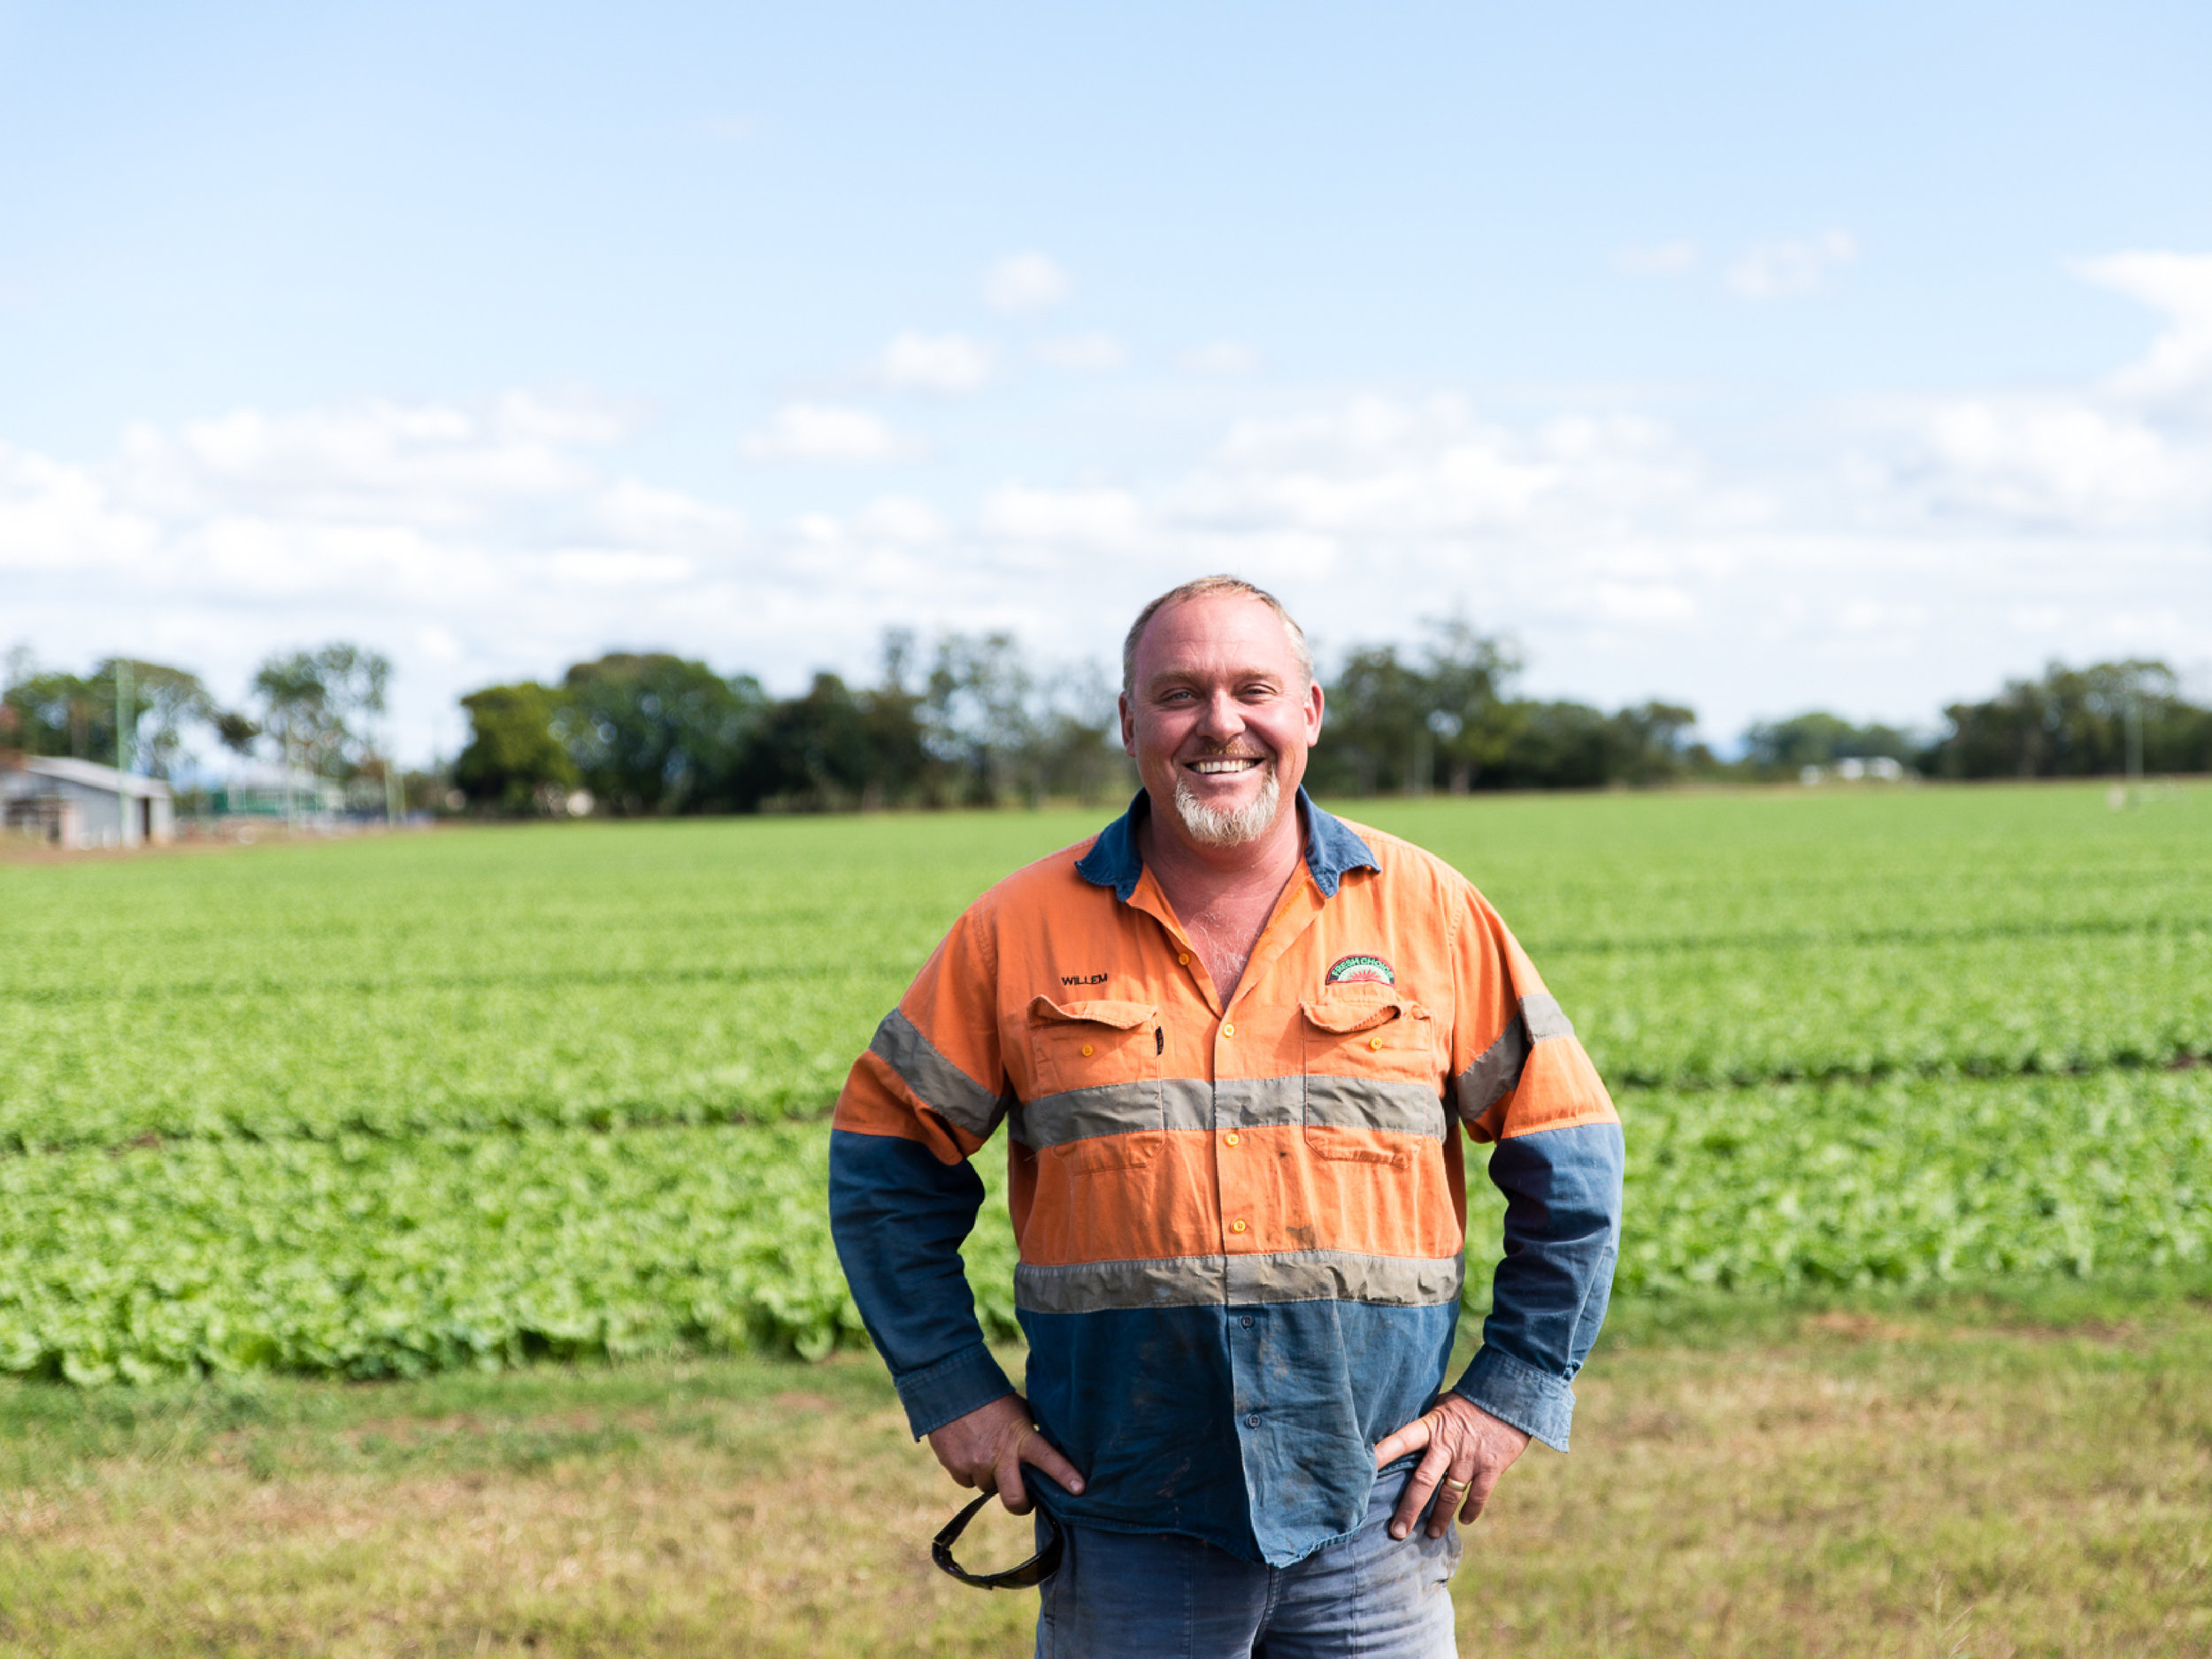 Willem is responsible for handling the day to day operations of our farms in the darling downs. Willem works along side Anthony and Luke to ensure our processes and farms are as productive and efficient as possible.